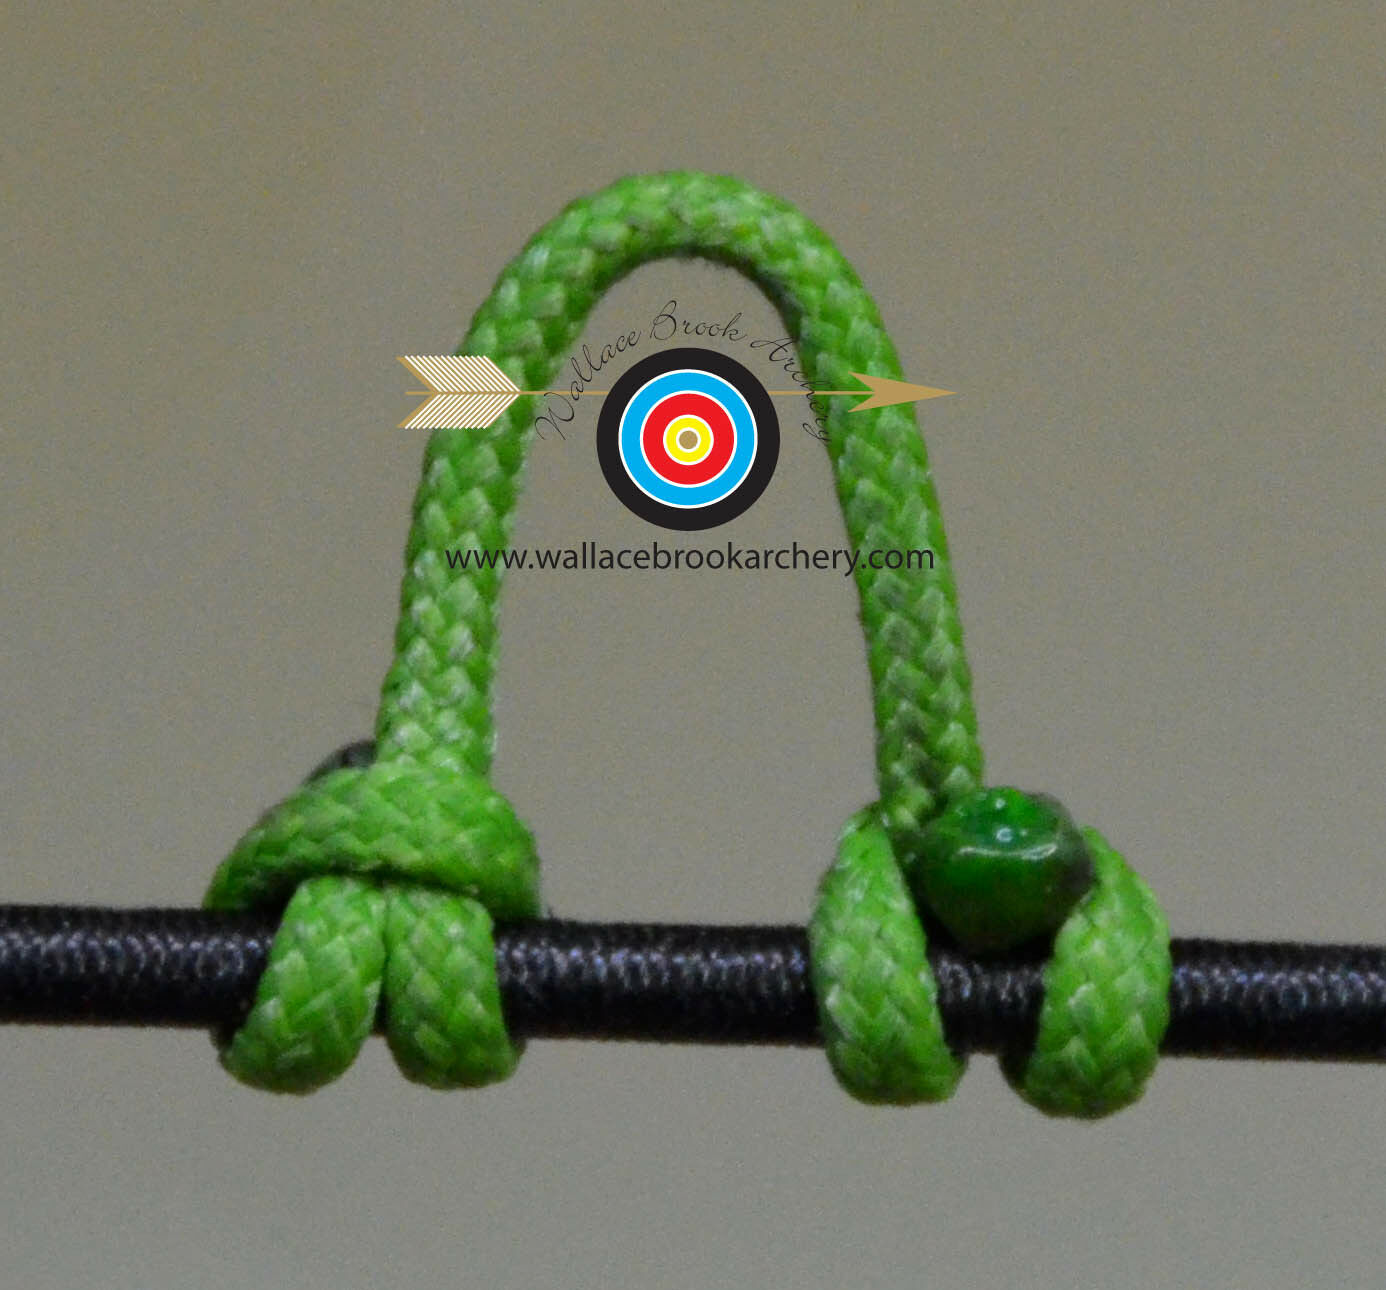 25 Feet RELEASE BOWSTRING NOCK NOCKING D LOOP ROPE Archery Bow FLO GREEN